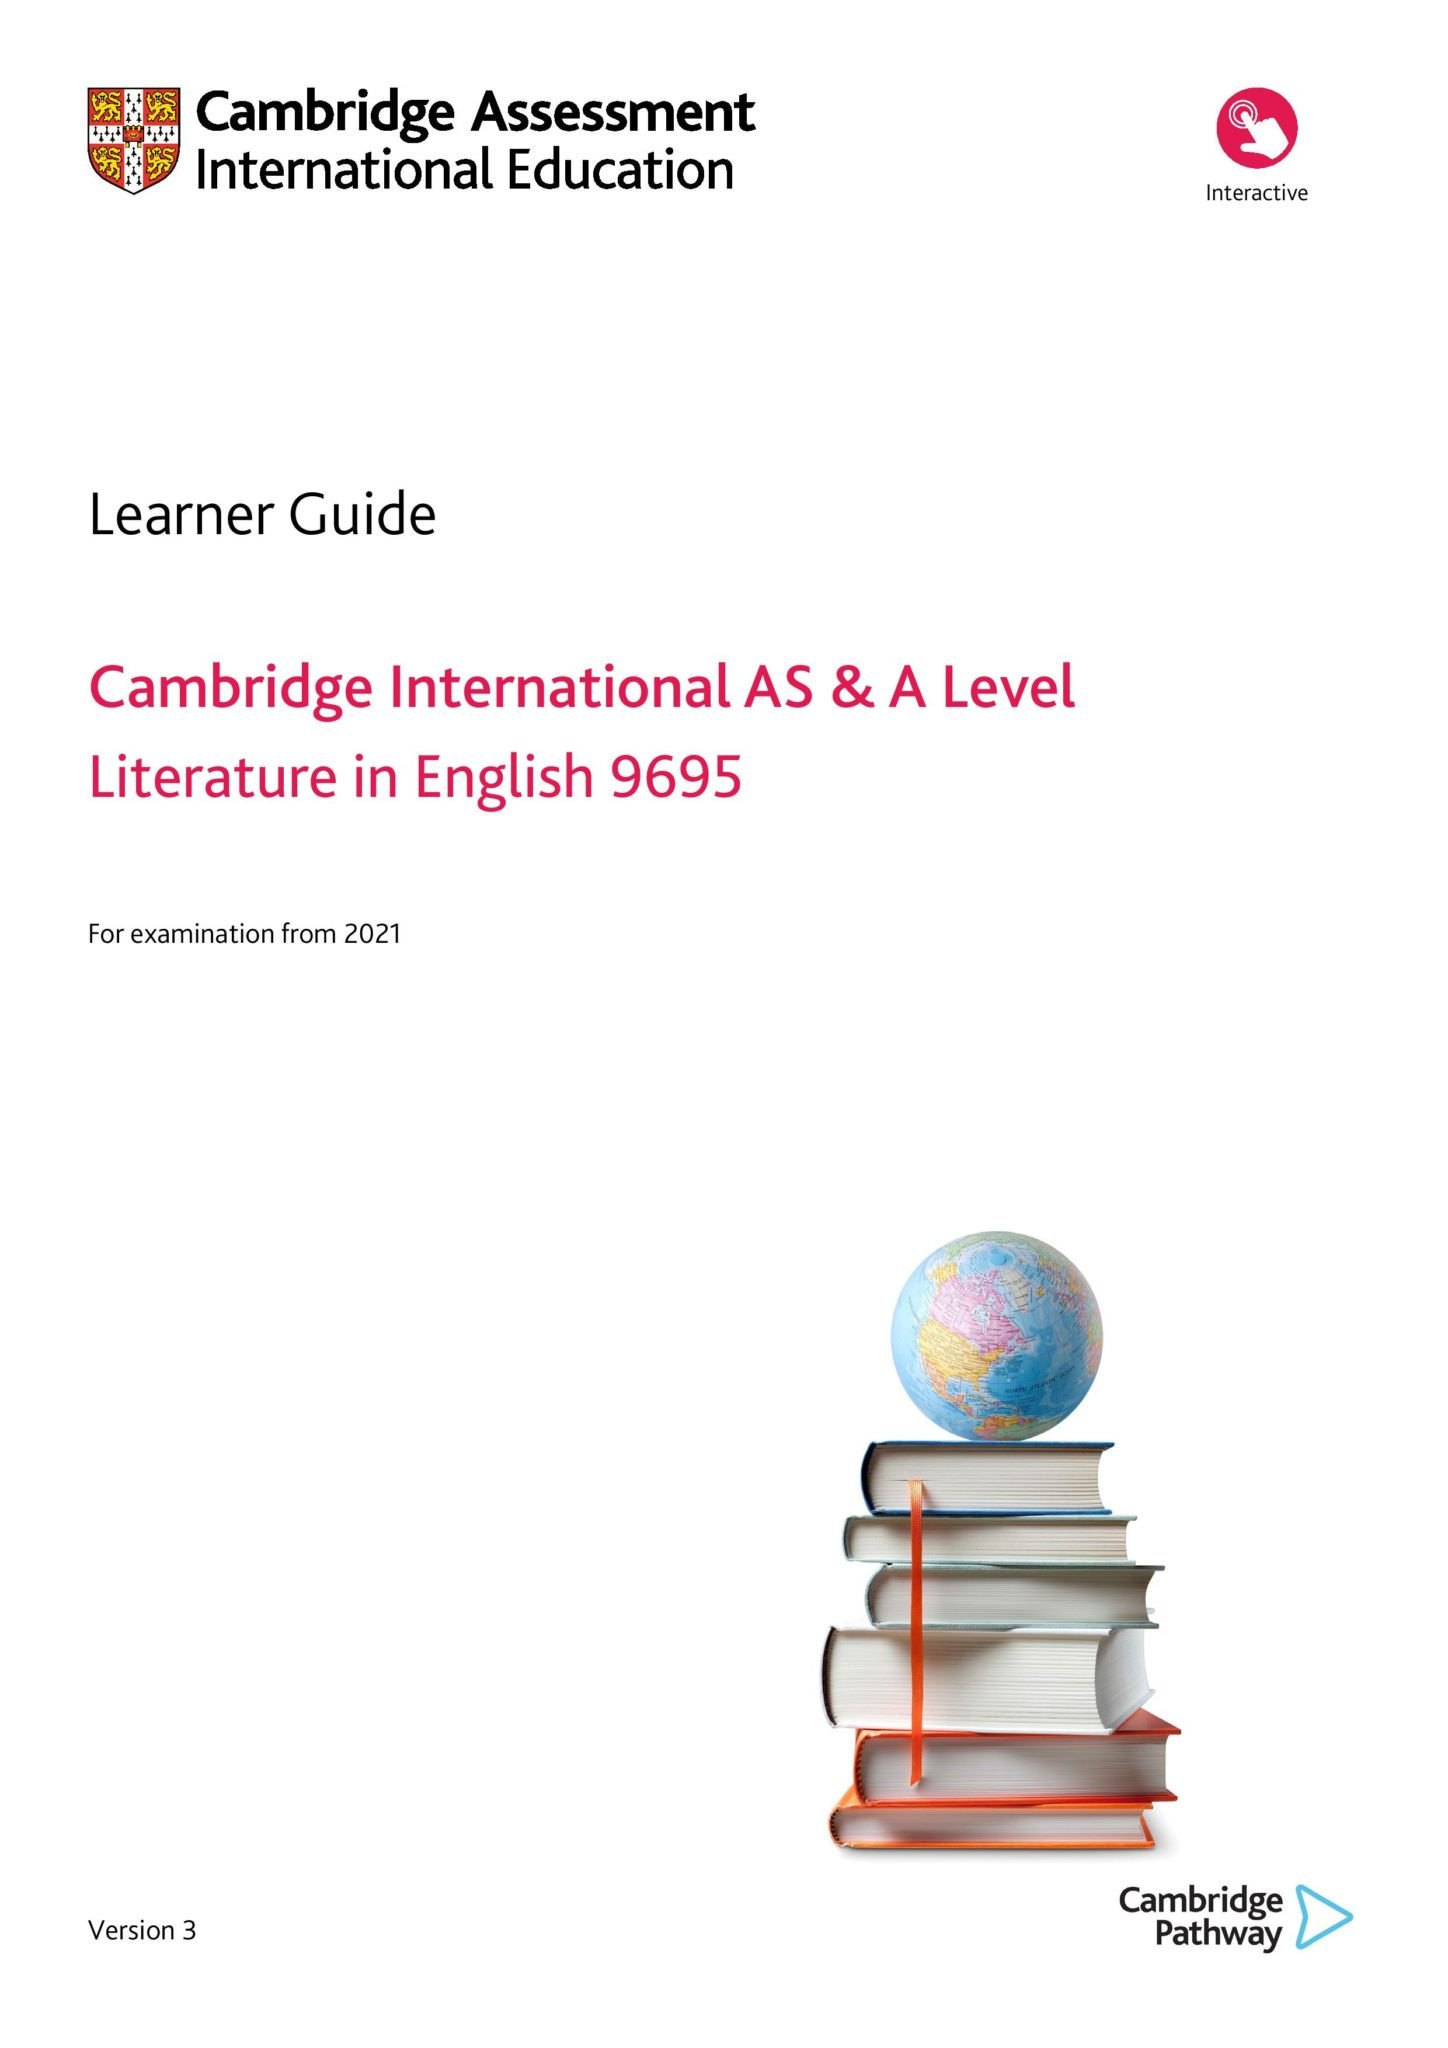 9695_Learner_Guide_for_examination_from_2021-5ea6a0d7b83de-page-001